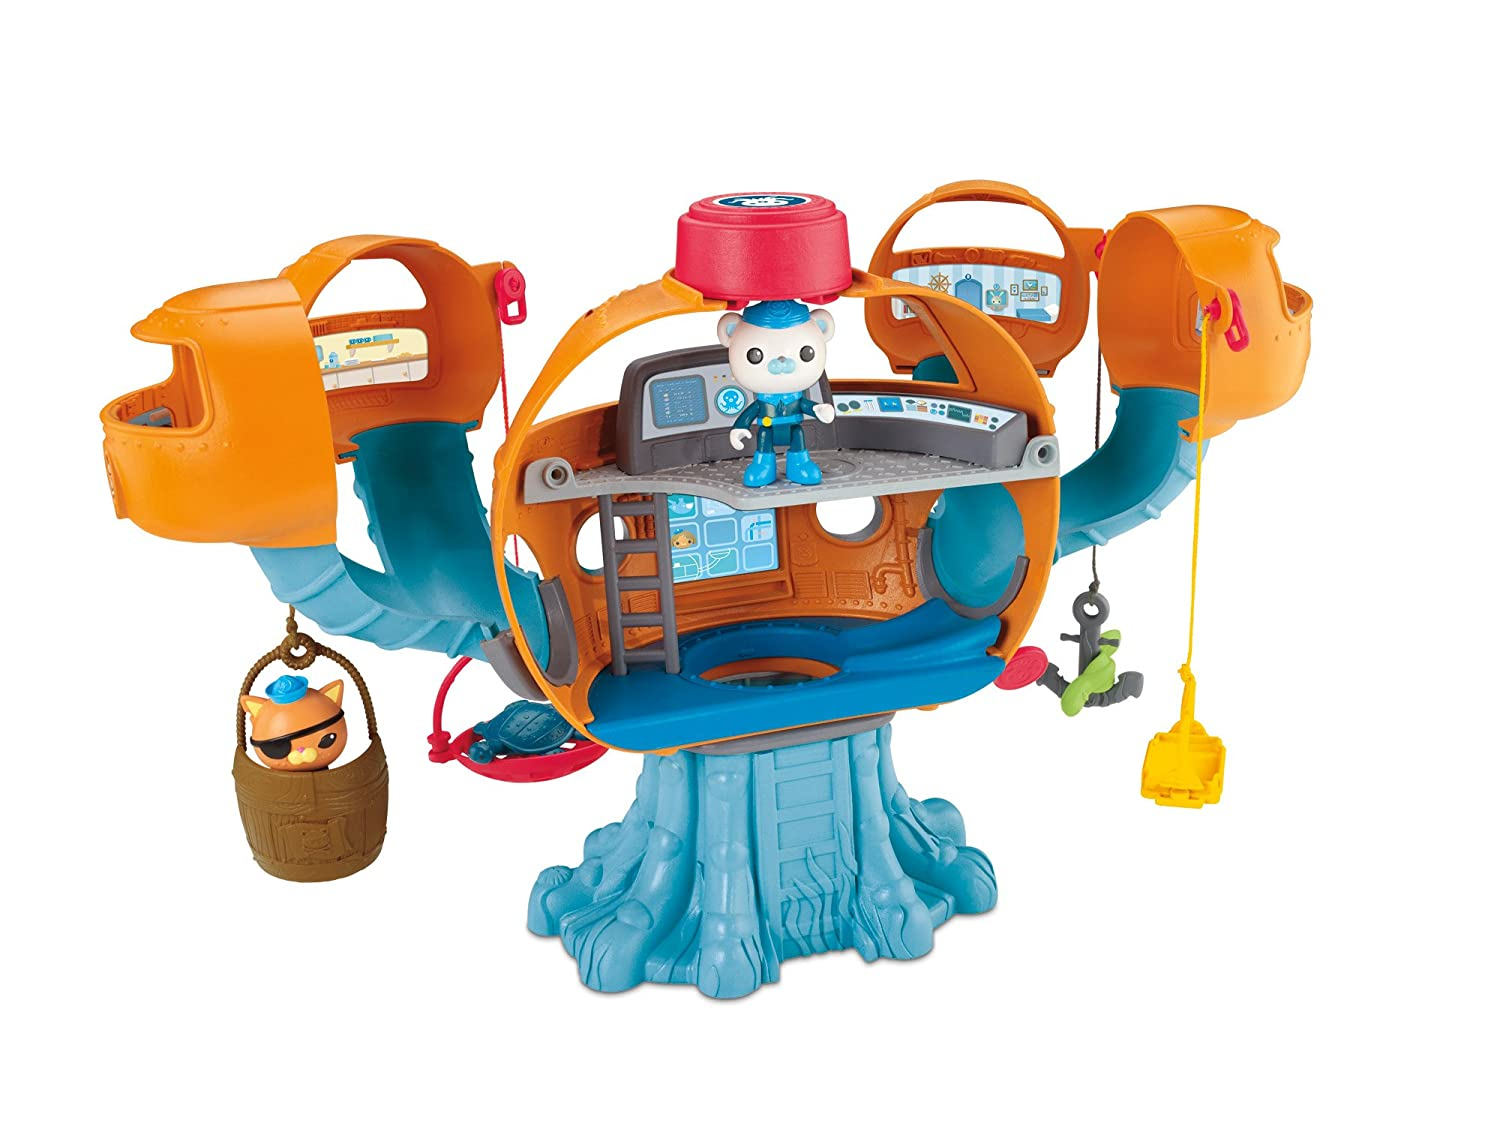 Best Octonauts Toys Kids : Best gifts for year old boys in itsy bitsy fun